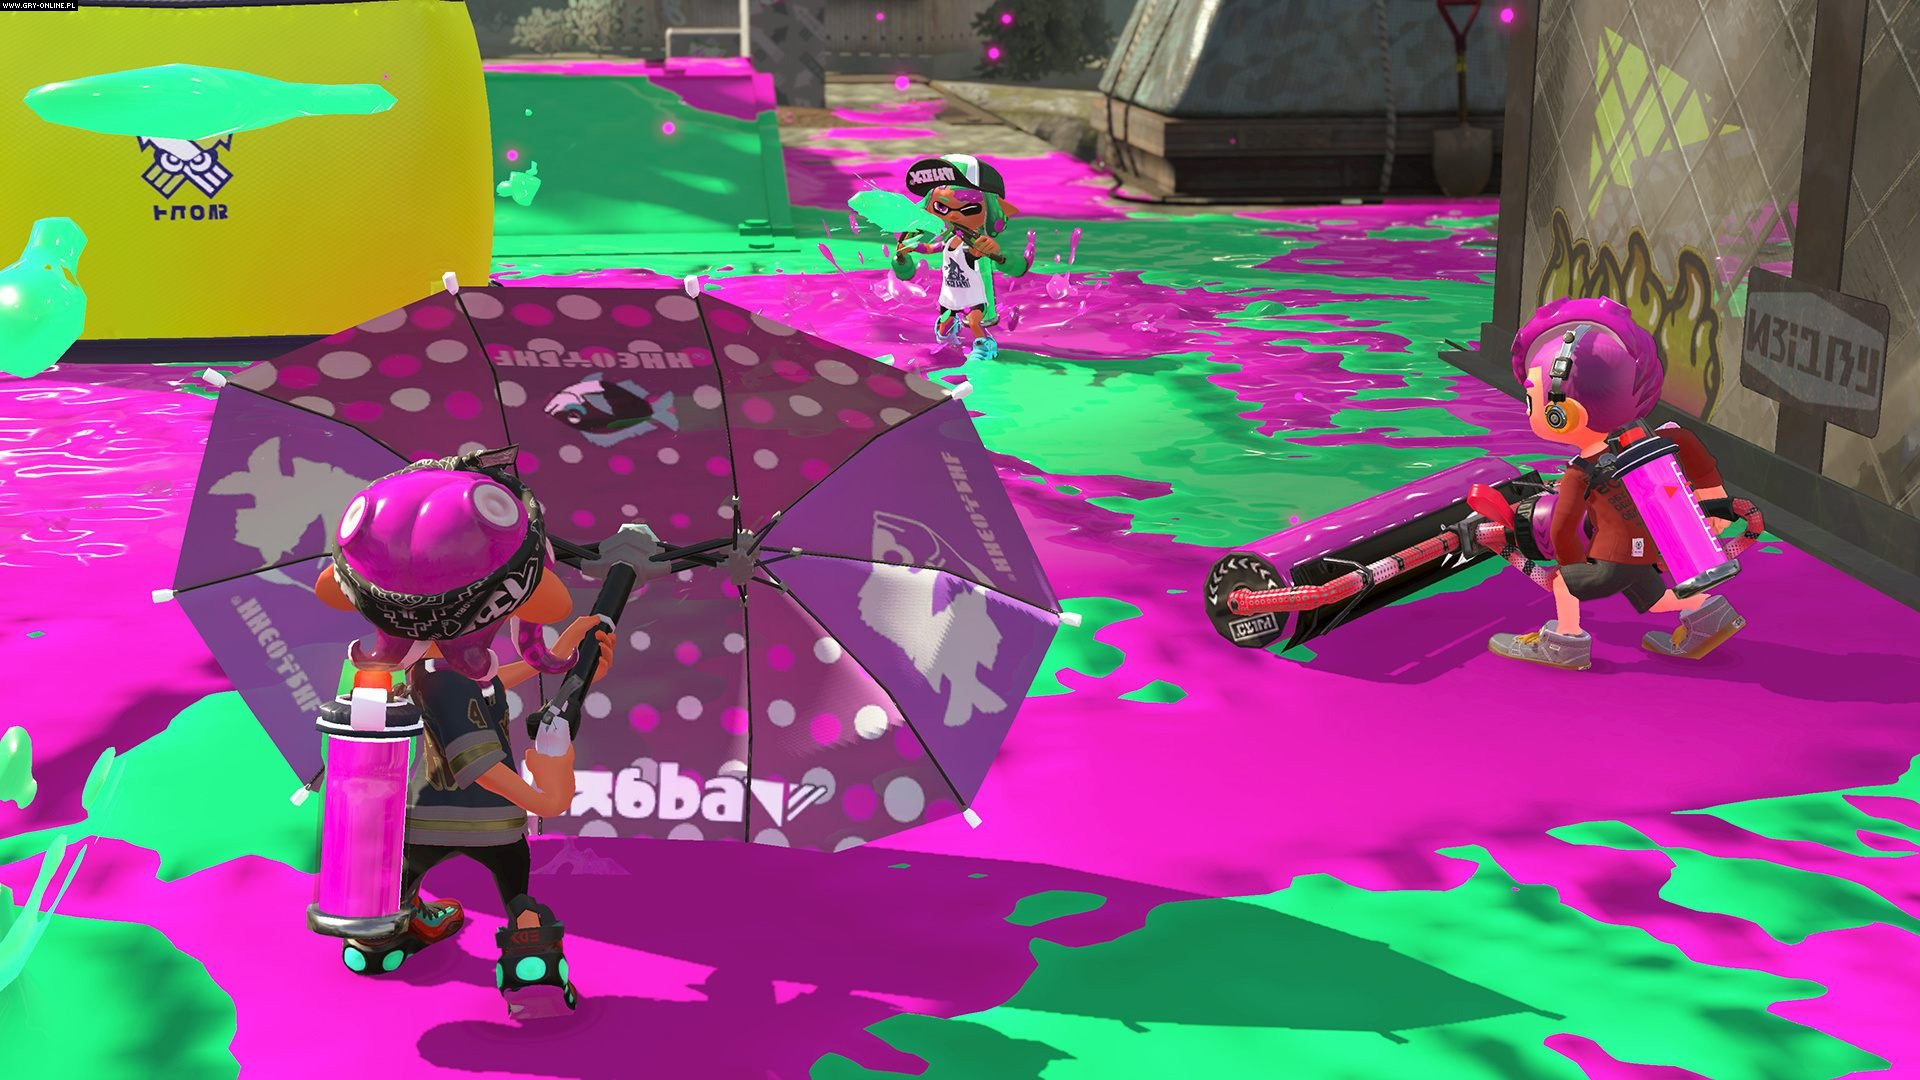 Splat brella protecting an Octoling from an opposing inkling.